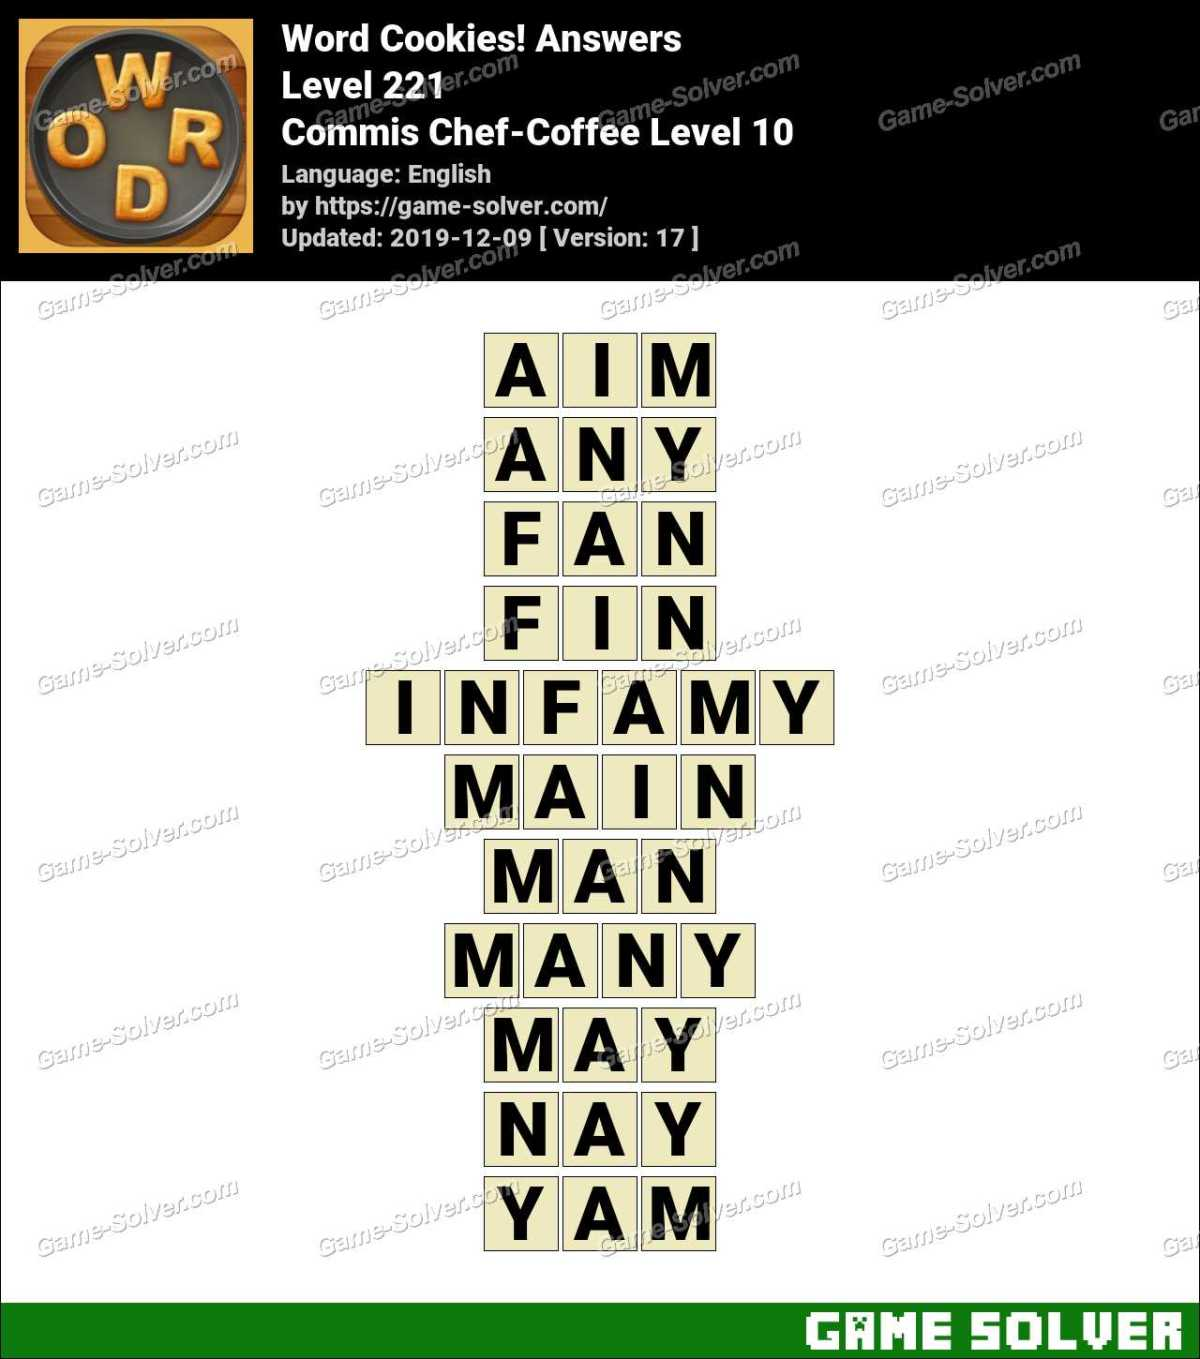 Word Cookies Commis Chef-Coffee Level 10 Answers